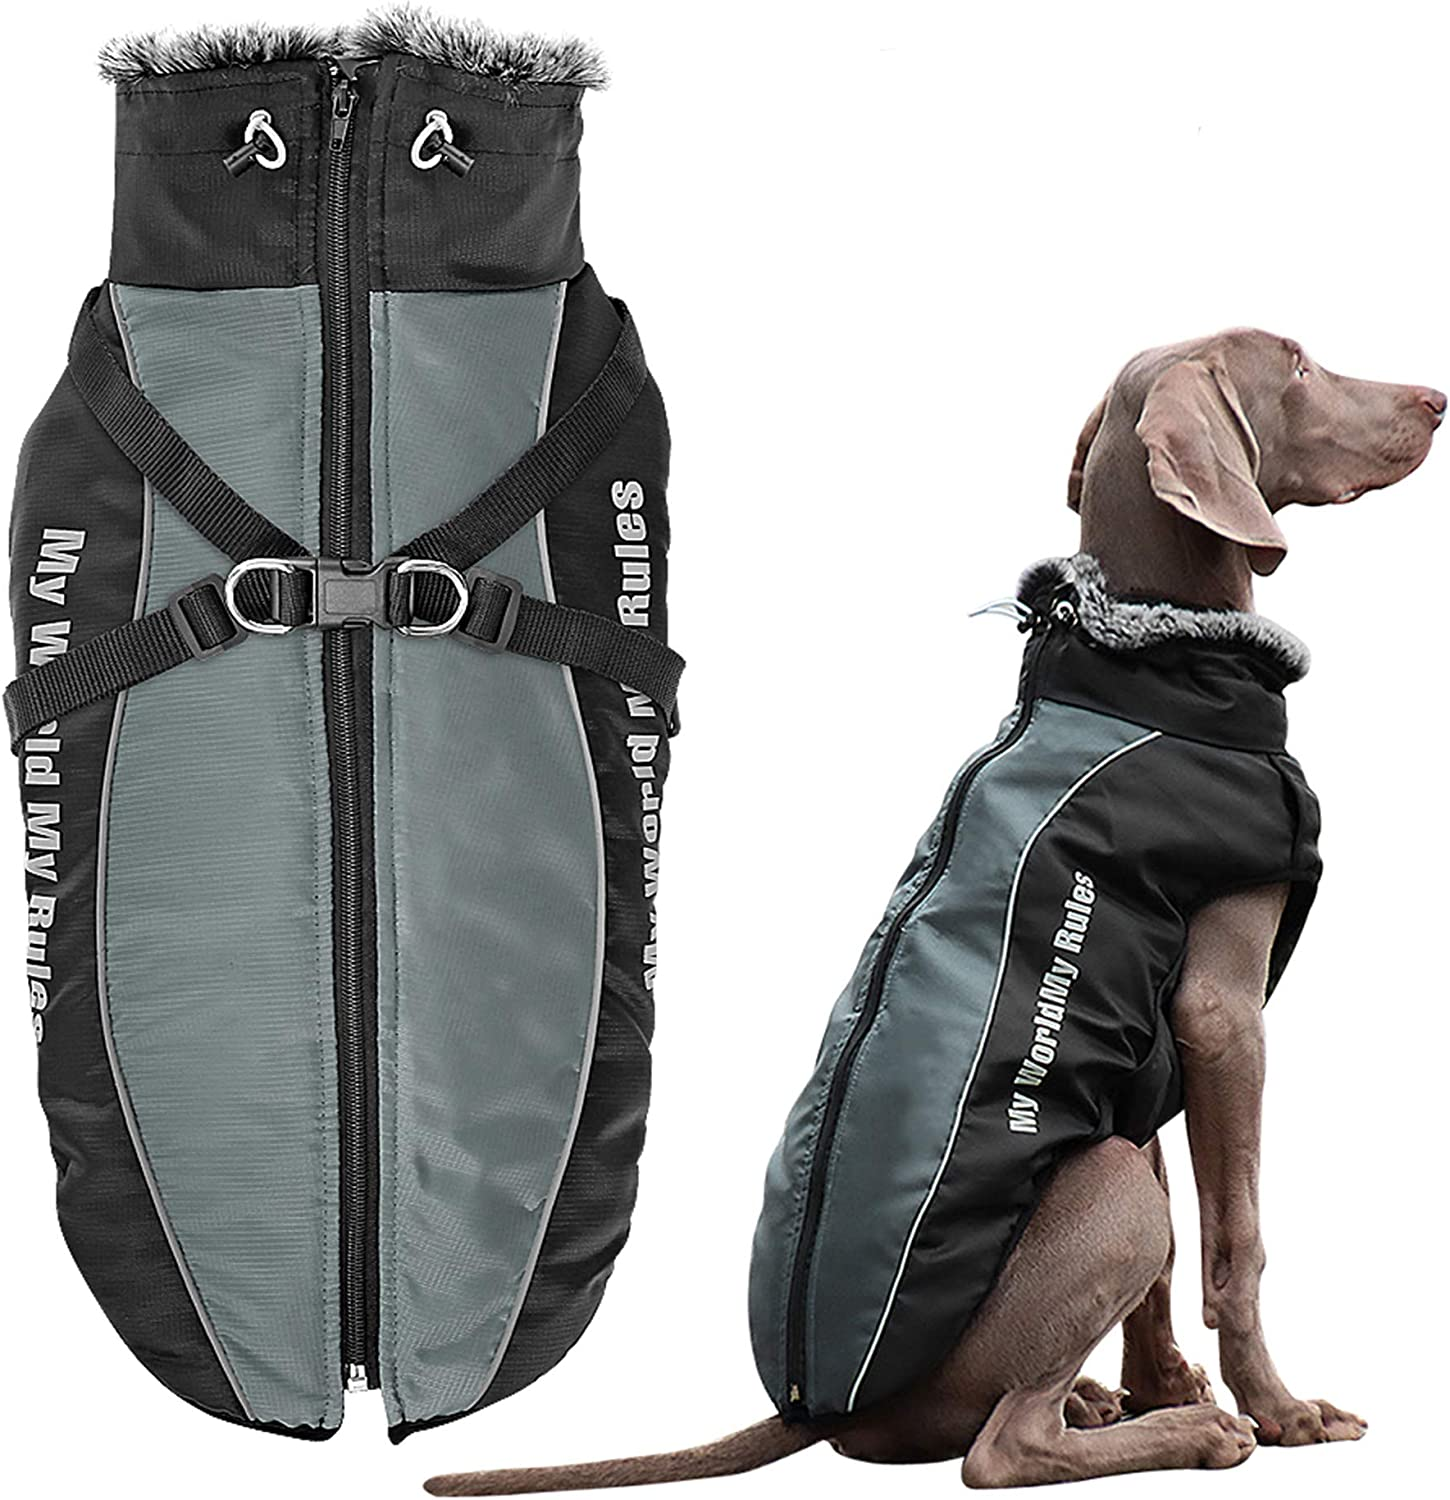 Didog Waterproof Beauty products Dog Winter Jackets Weather with Trust Coats Cold